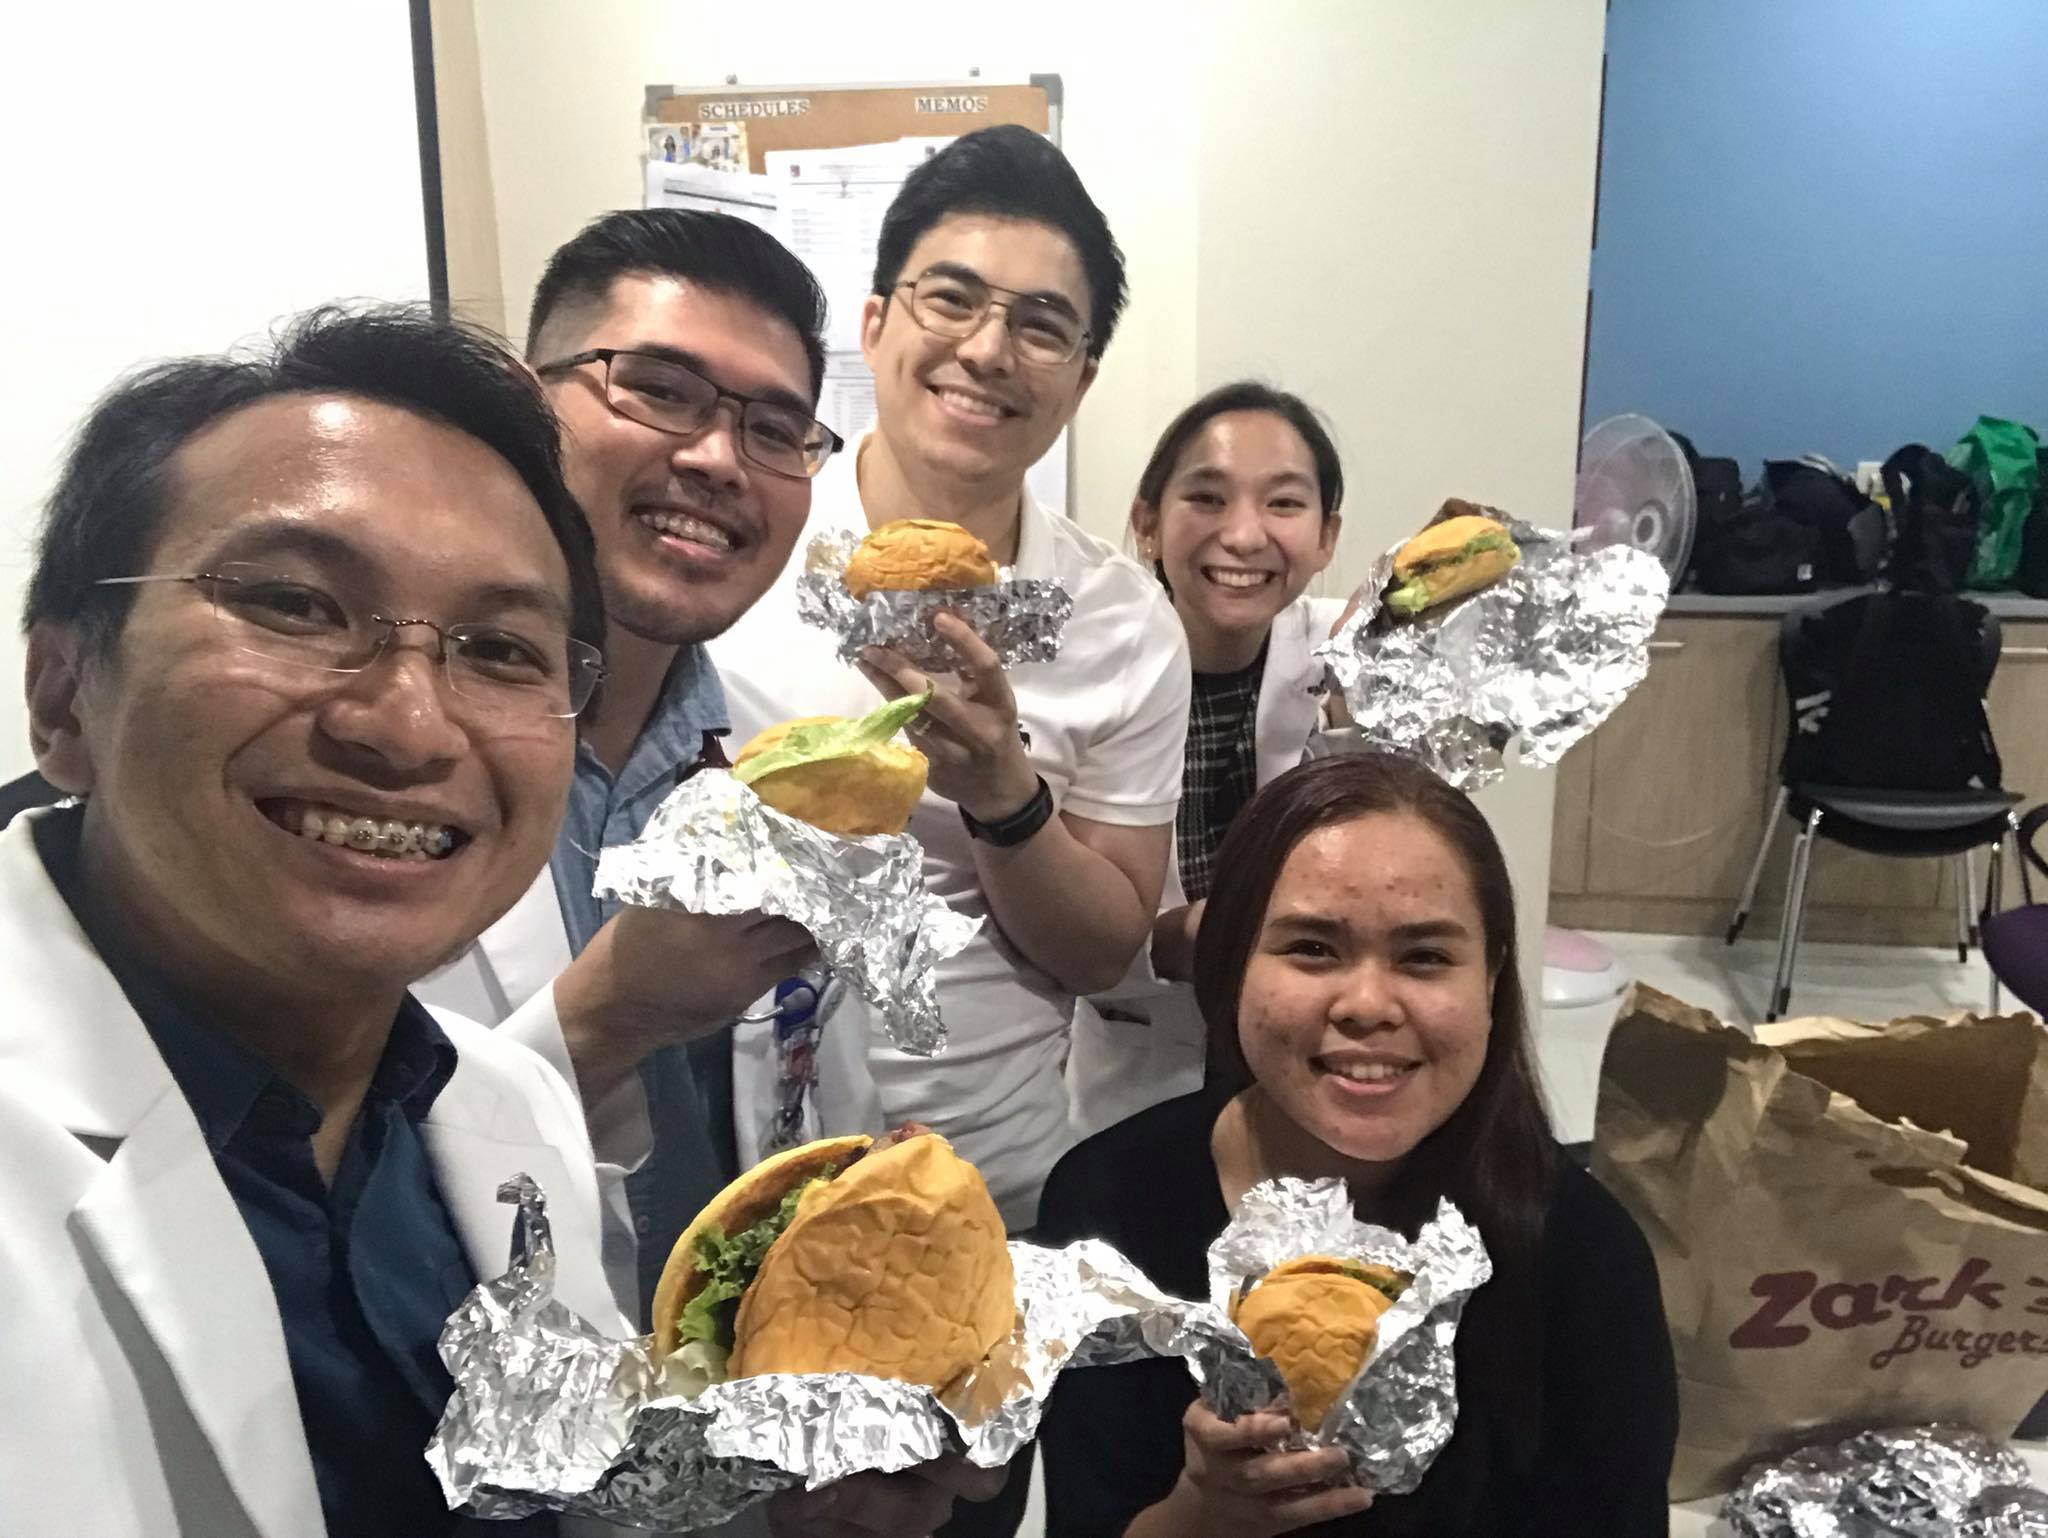 Zark's Burgers give free food to hospital workers